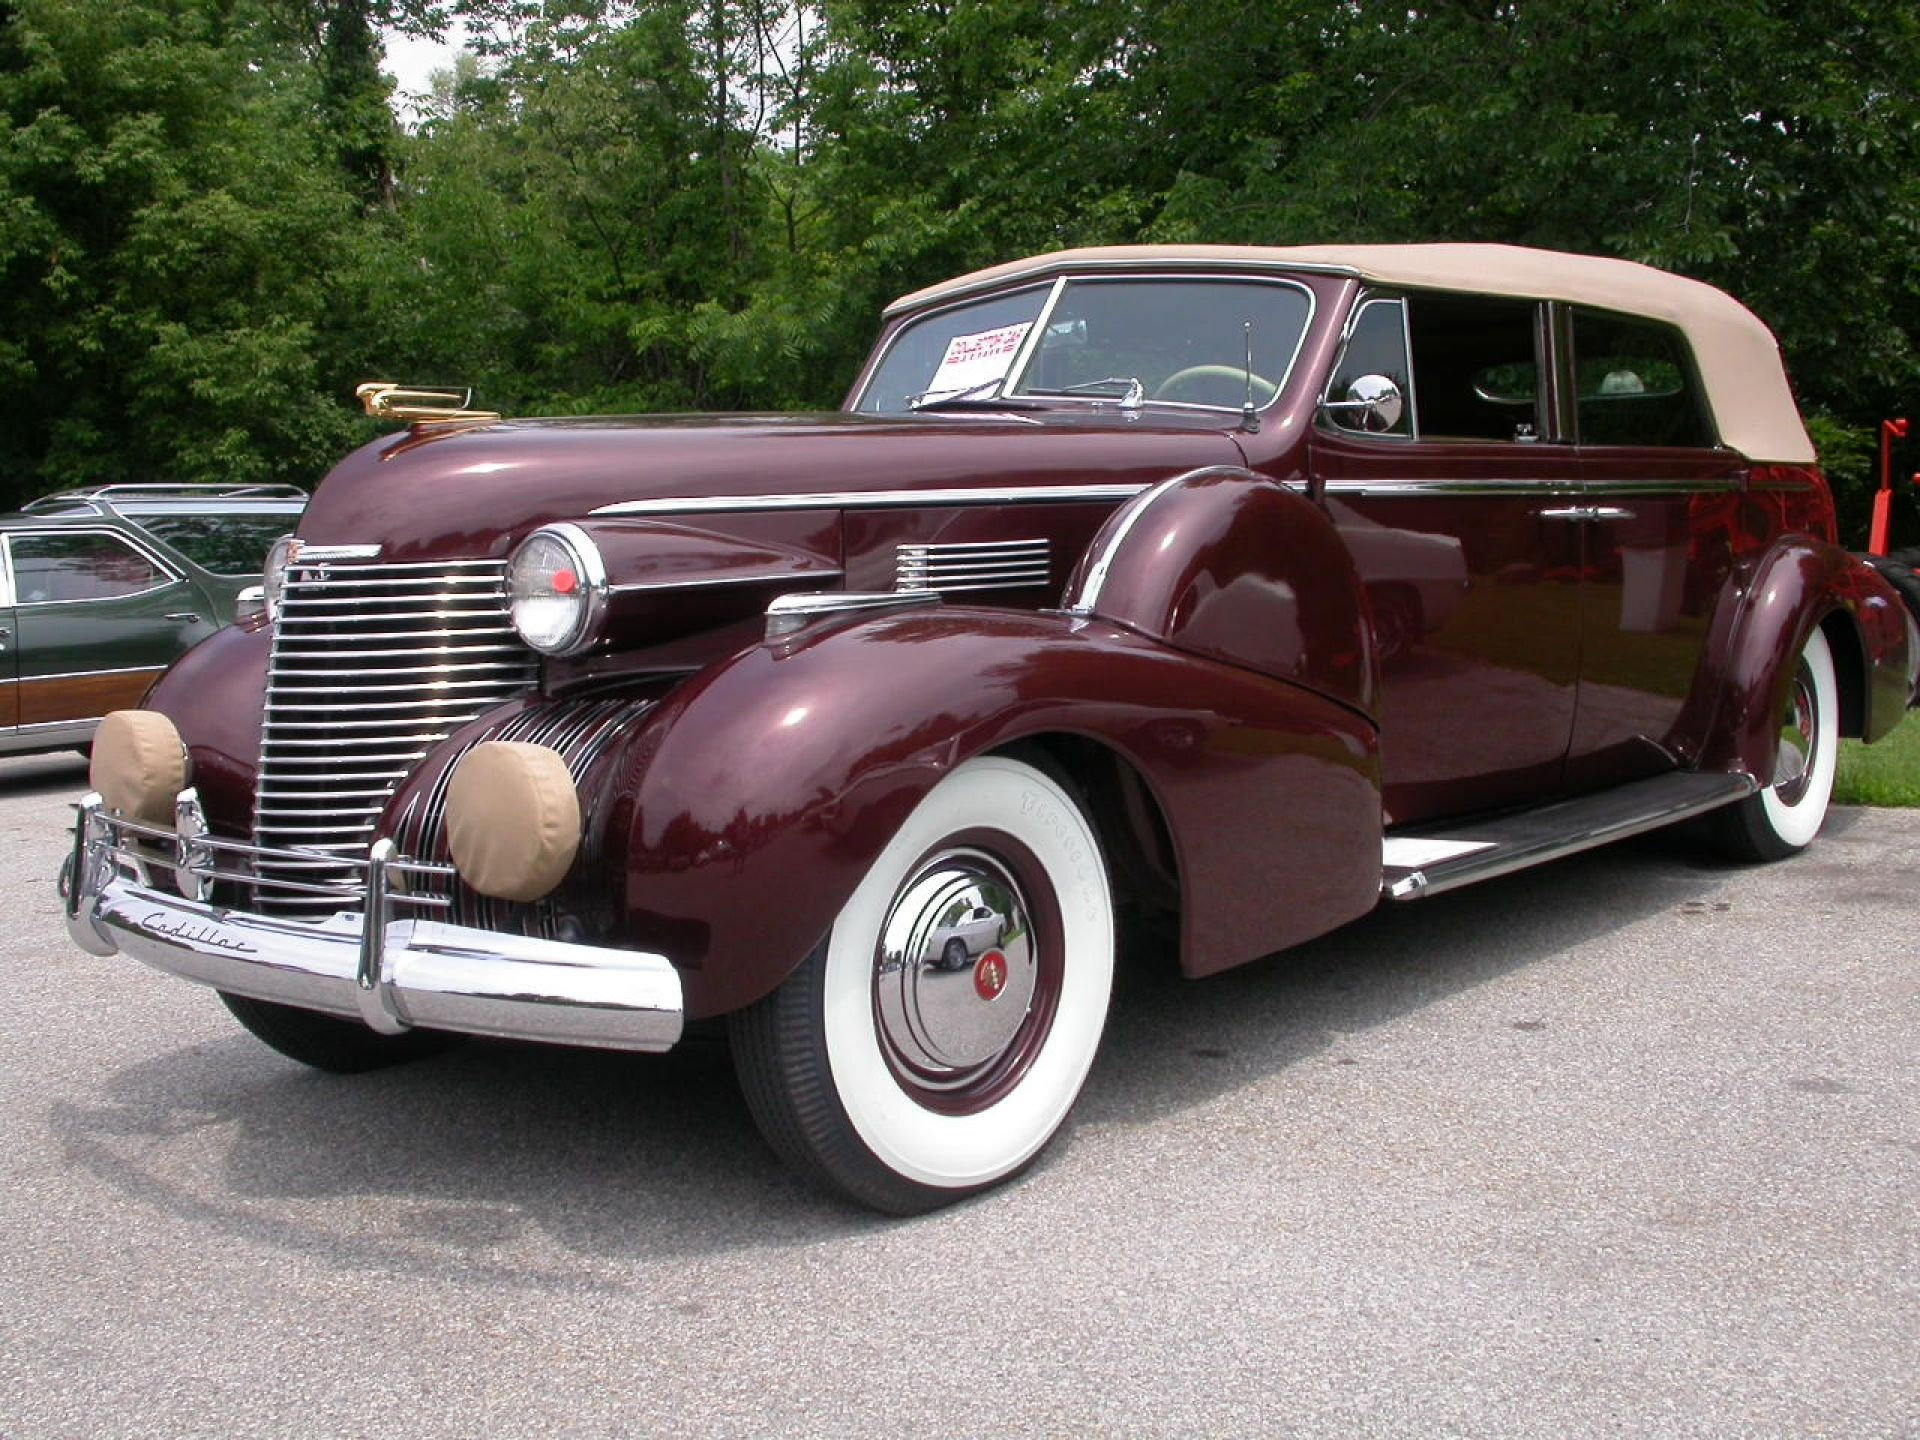 old cadillacs pictures | car american car cadillac american classic ...